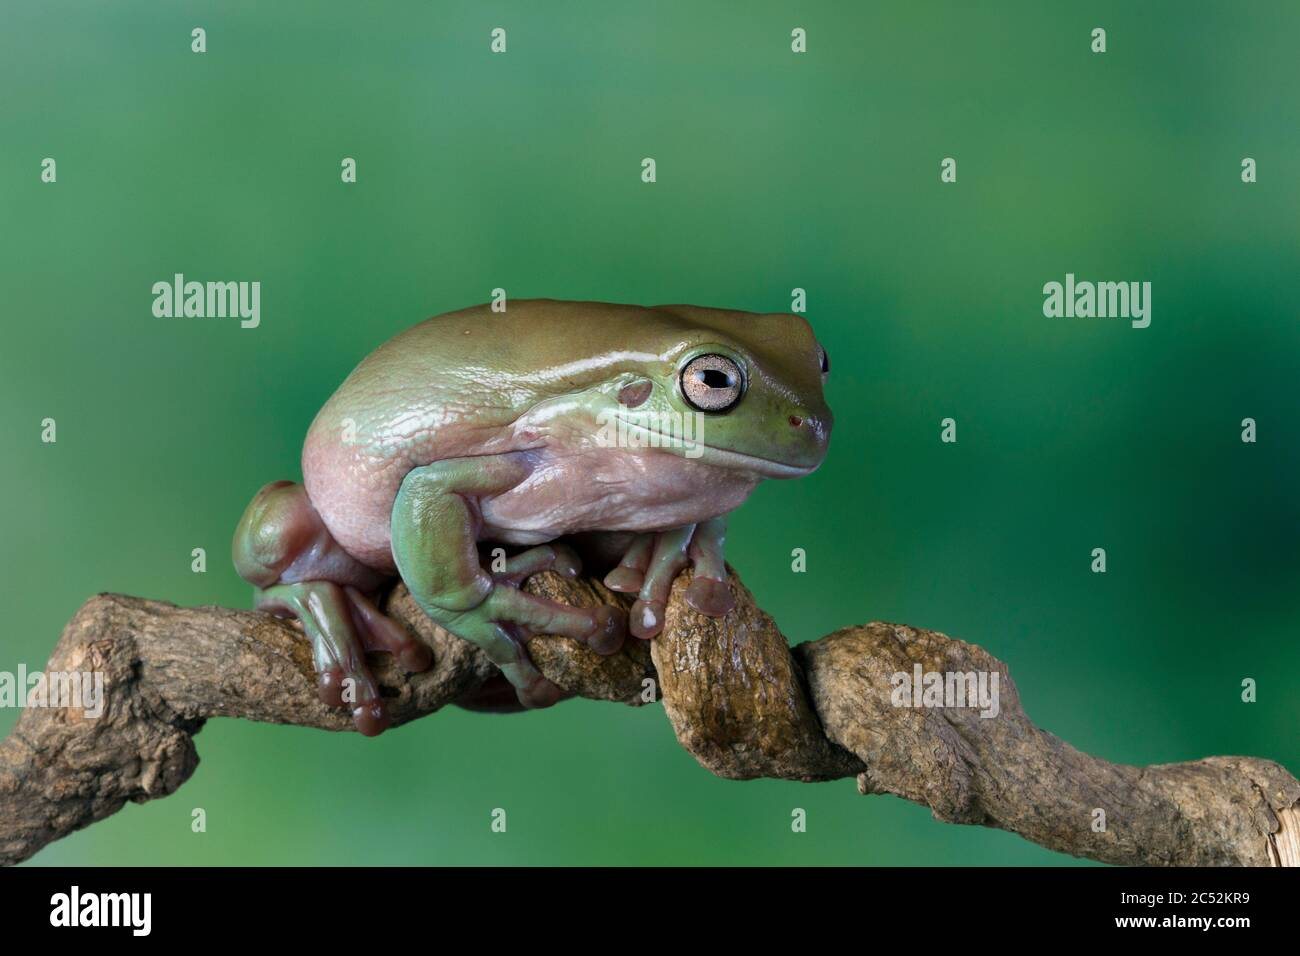 Australian white tree frog sitting on a branch, Indonesia Stock Photo